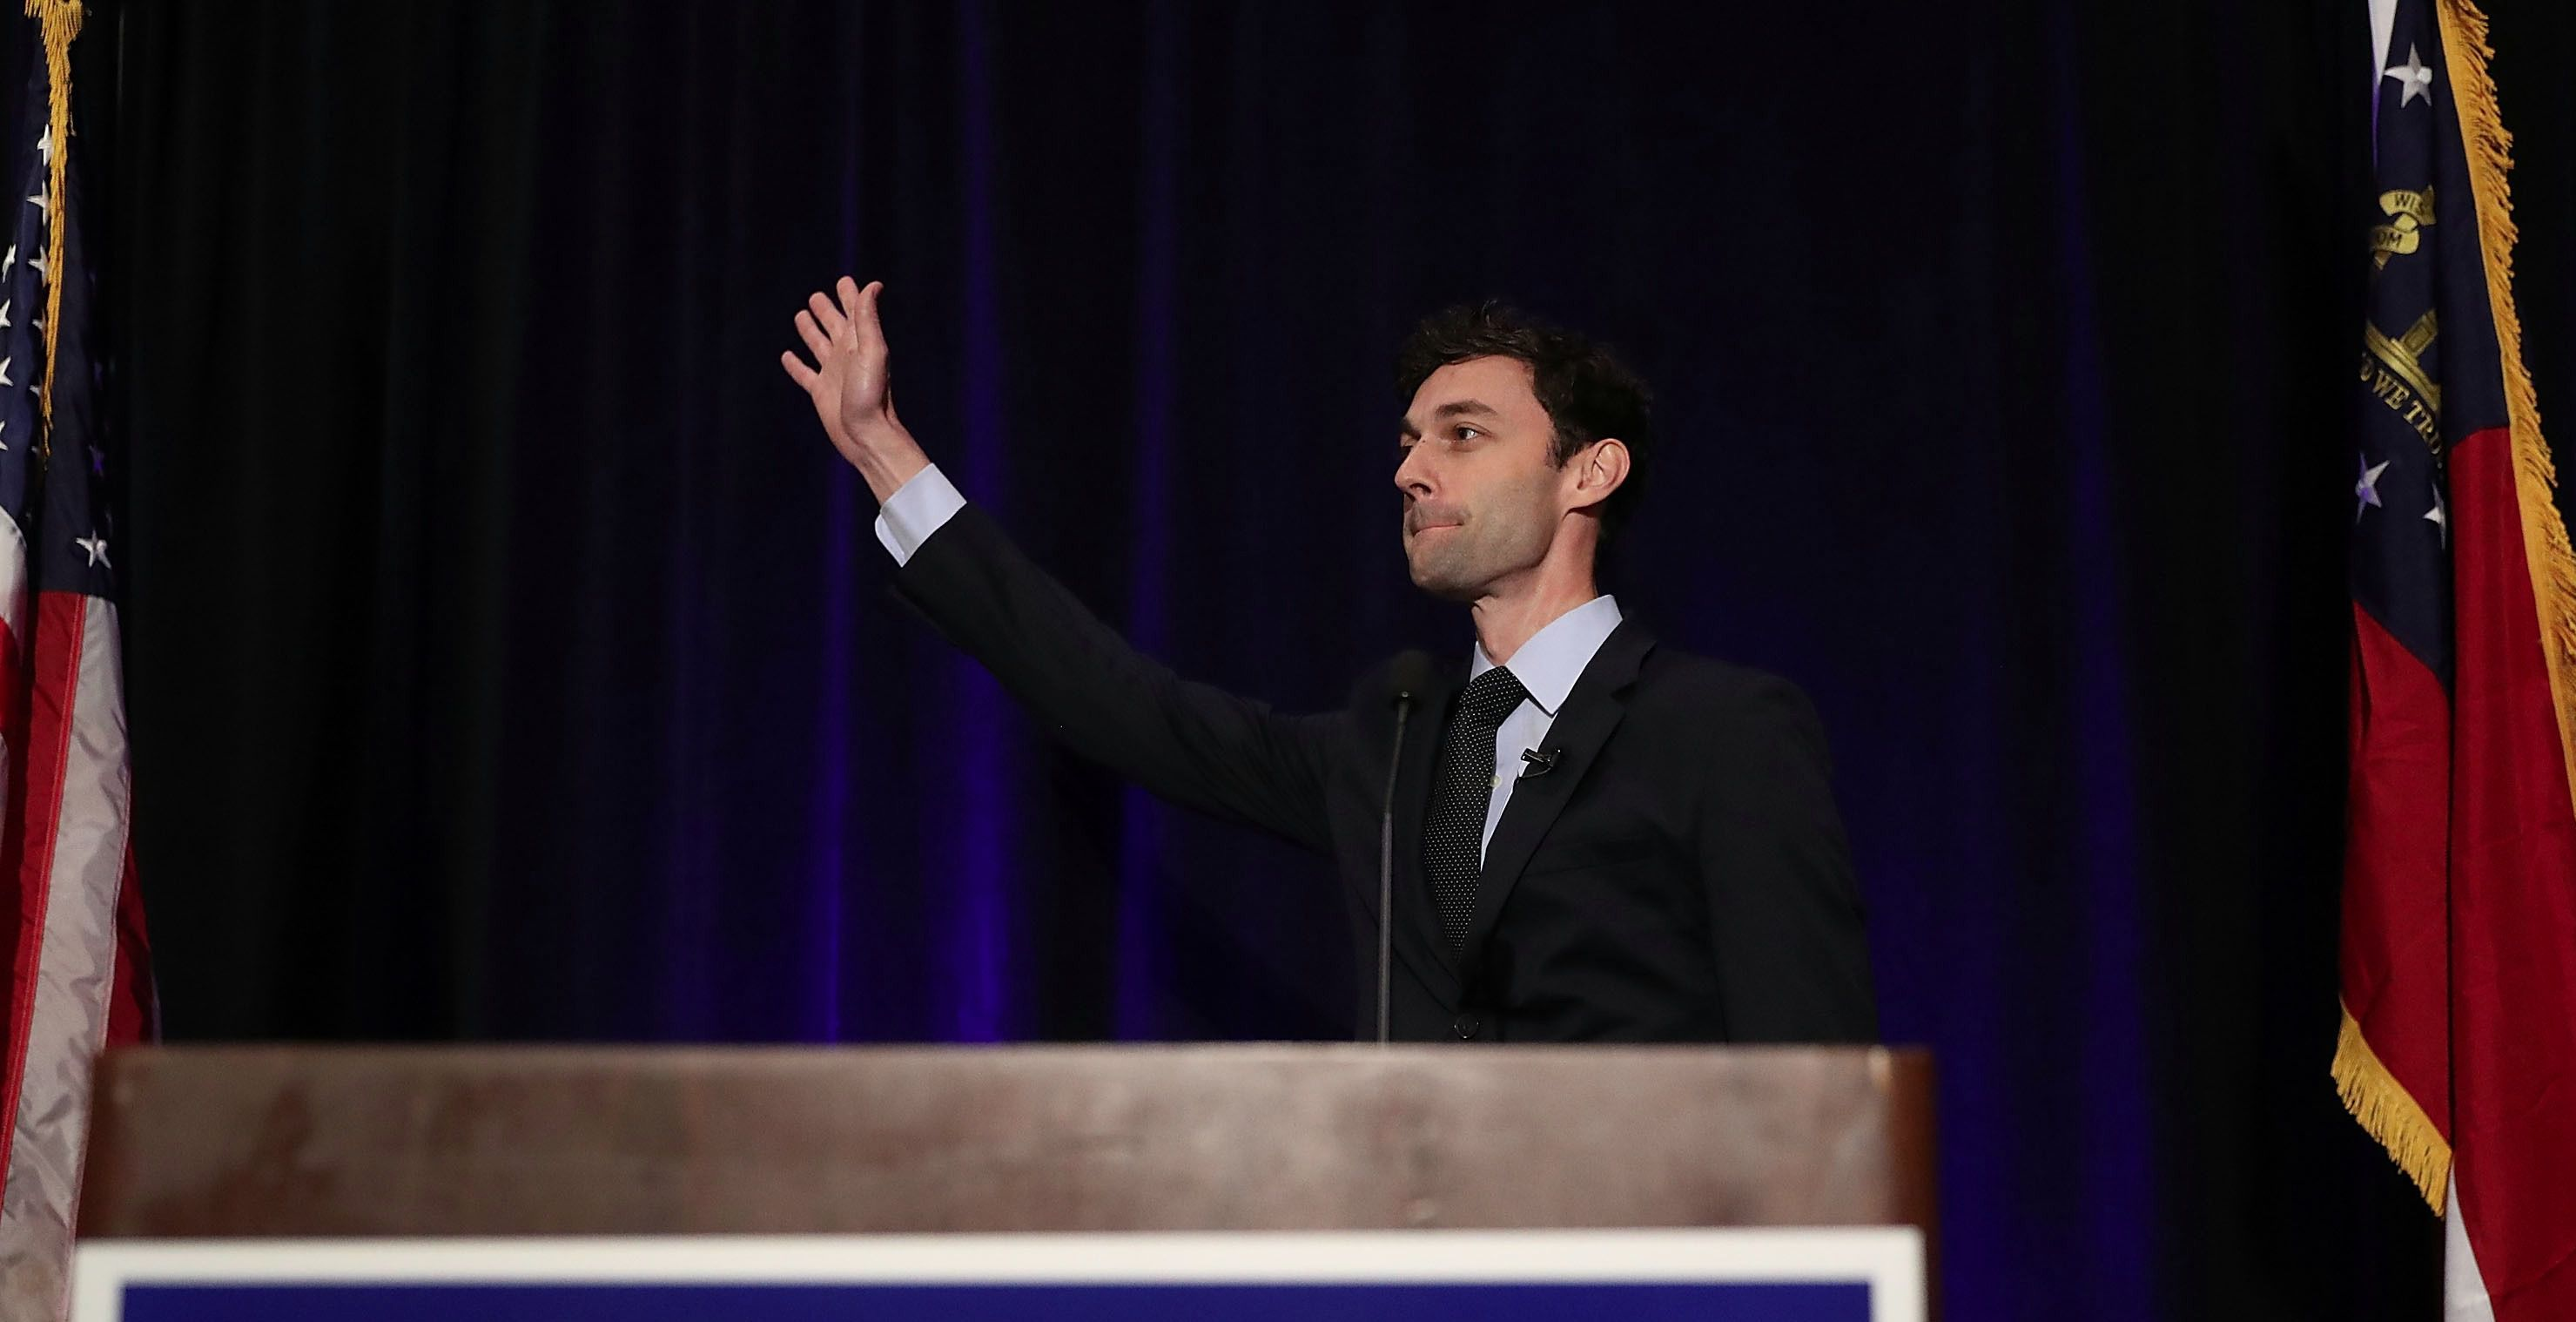 Democratic candidate Jon Ossoff speaks to his supporters in Georgia's 6th Congressional District as votes in the first round of the special election continue to be counted.